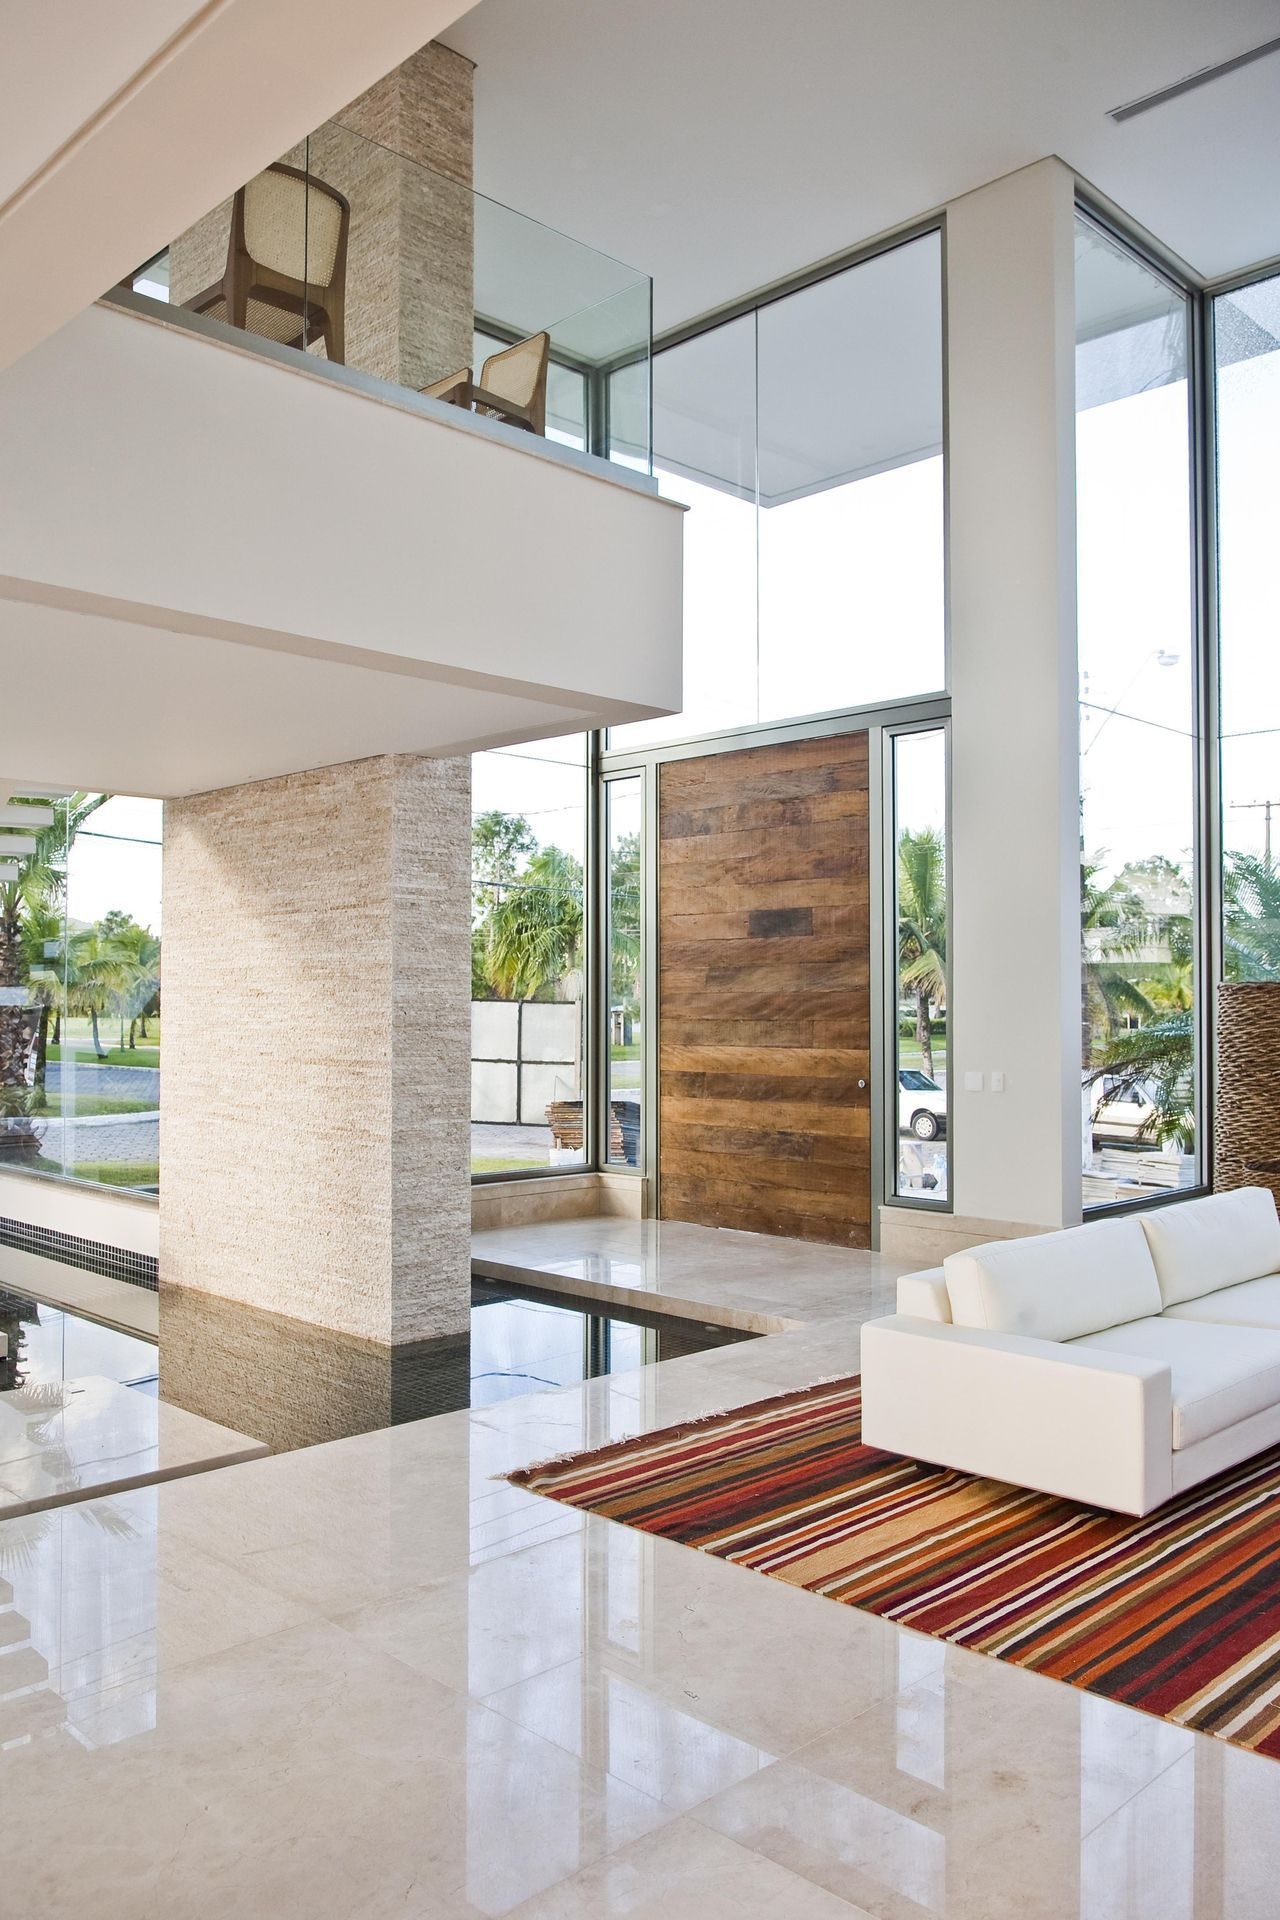 Liked this for the open ness and view probably too much glass styling is more modern than we really like also fancy interior design luxury homes  small home remodel rh pinterest